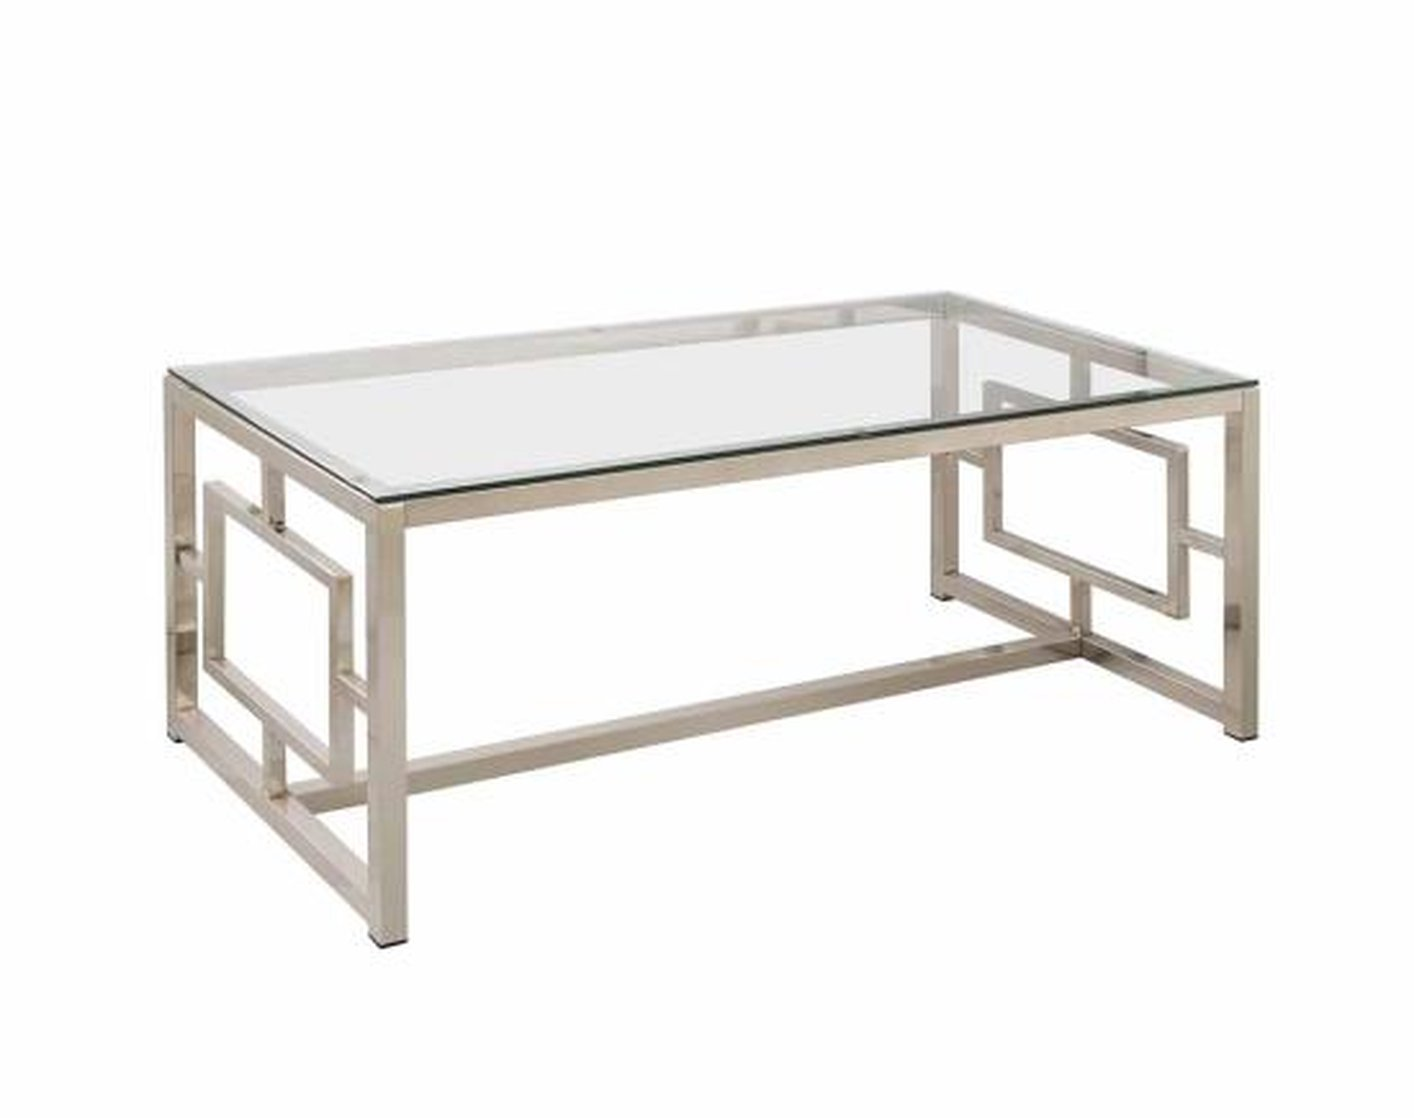 Silver-and-Glass-Coffee-Table-one-of-our-Younger-sectional-sofas-Elegant-With-Pictures-Of-Walmart-Tables-Interior-In (Image 7 of 10)